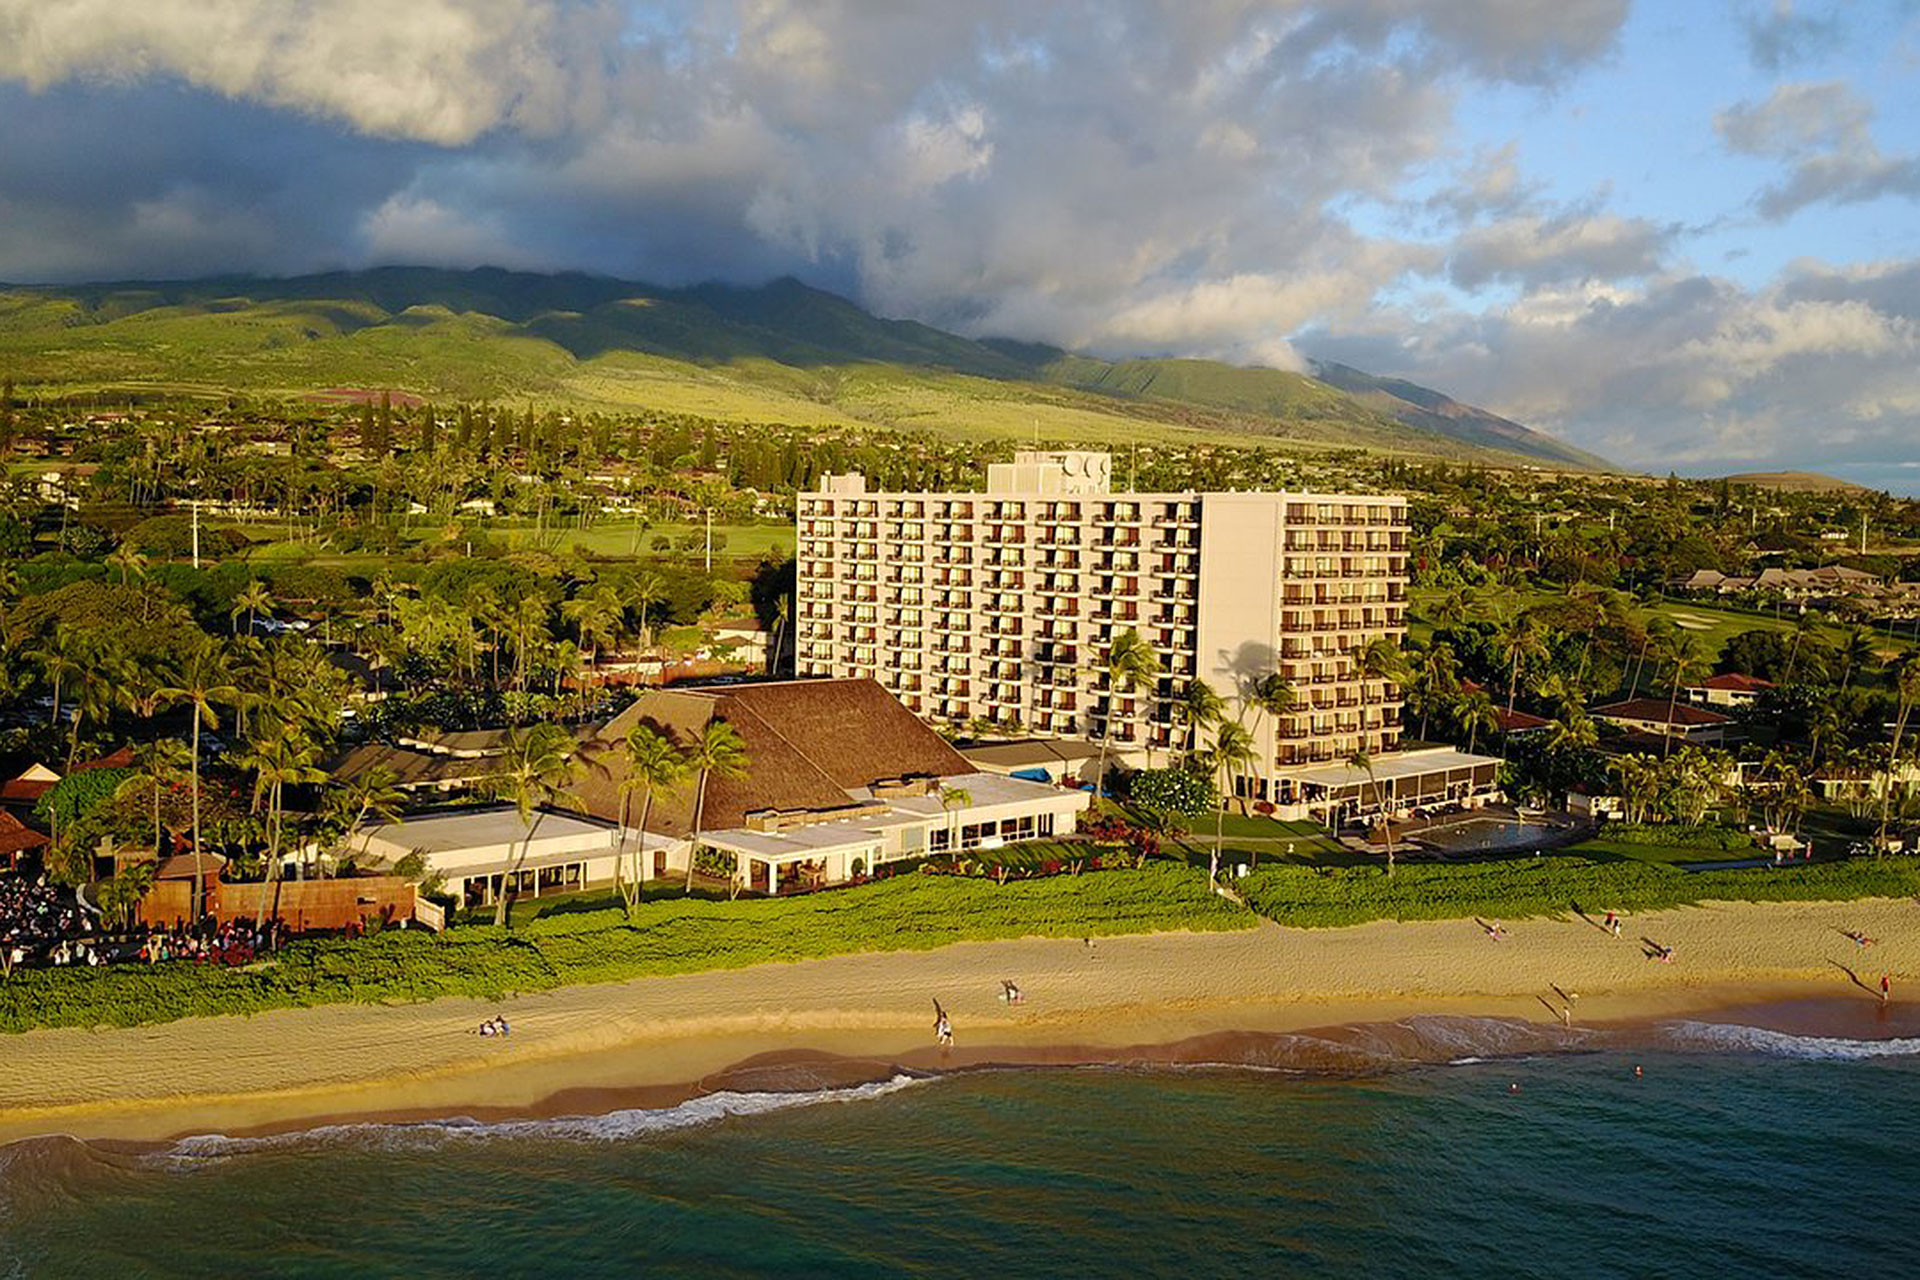 AllInclusive Hawaii Deals The Top Resorts for Families